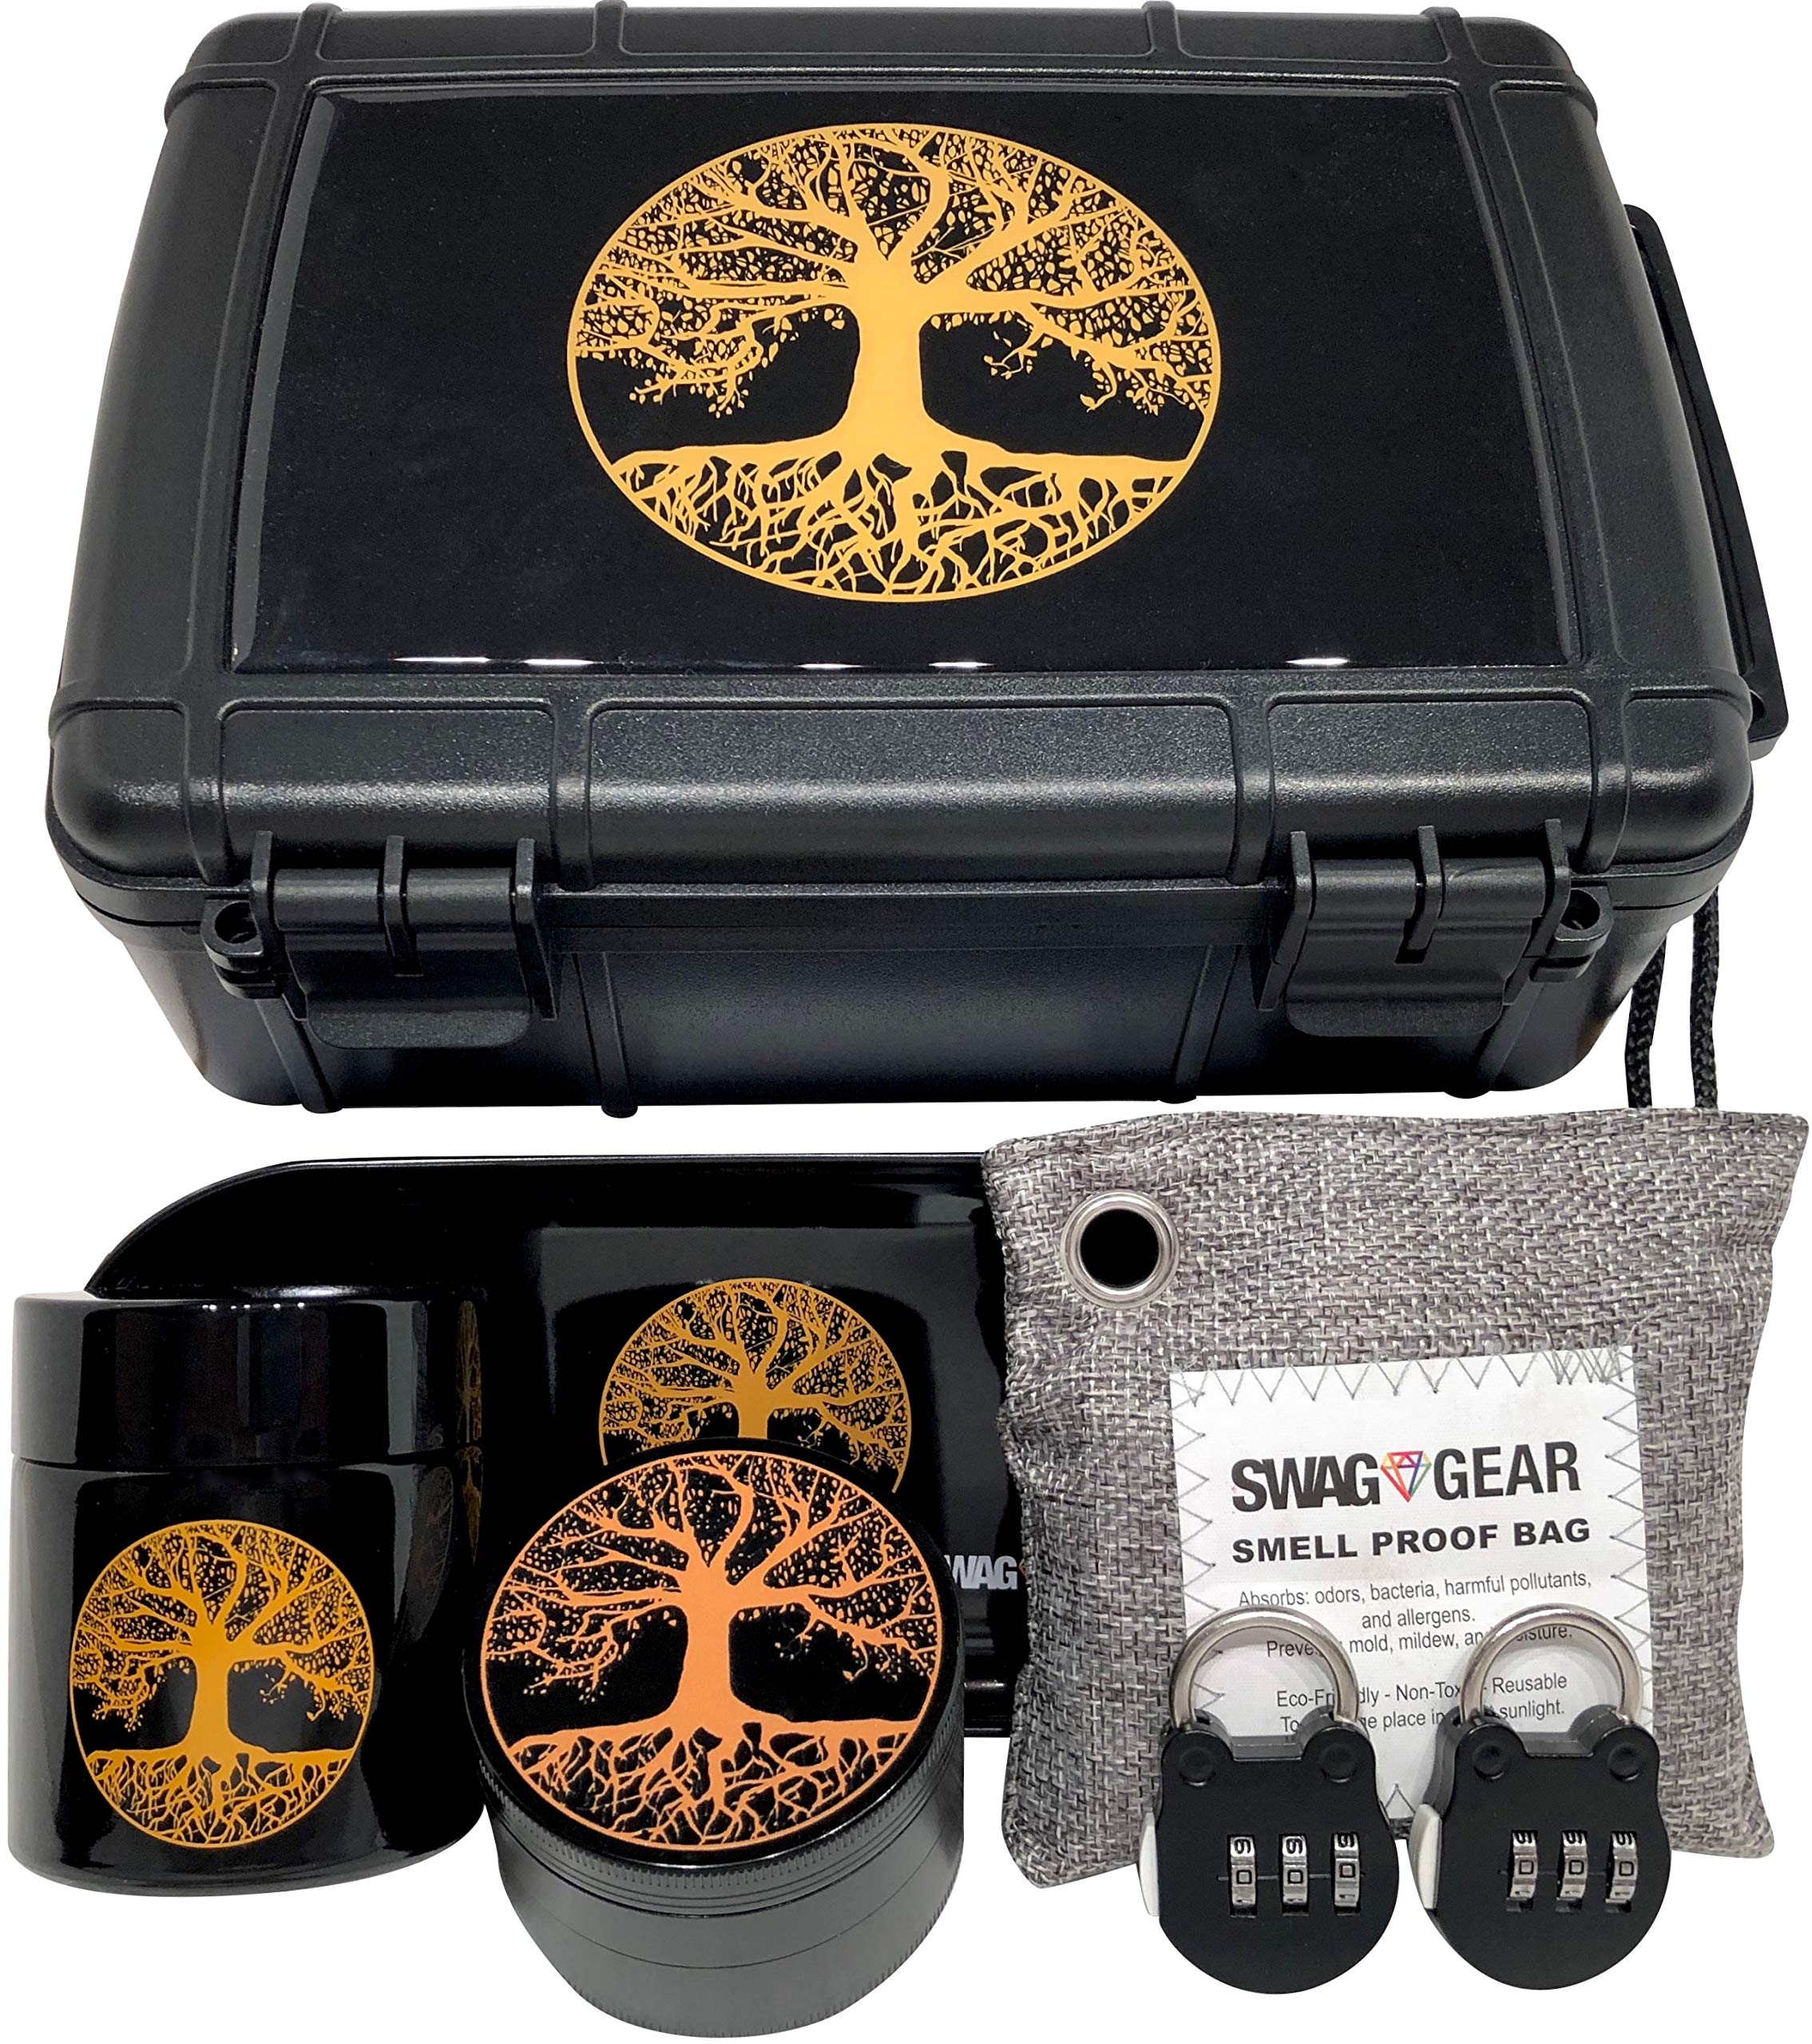 Tree of Life Stash Box Combo - Smell Proof Stash Box Combo - Locking Stash Box Combo - Comes with Grinder Stash Jar and Rolling Tray - (Tree of Life) by Swag Gear